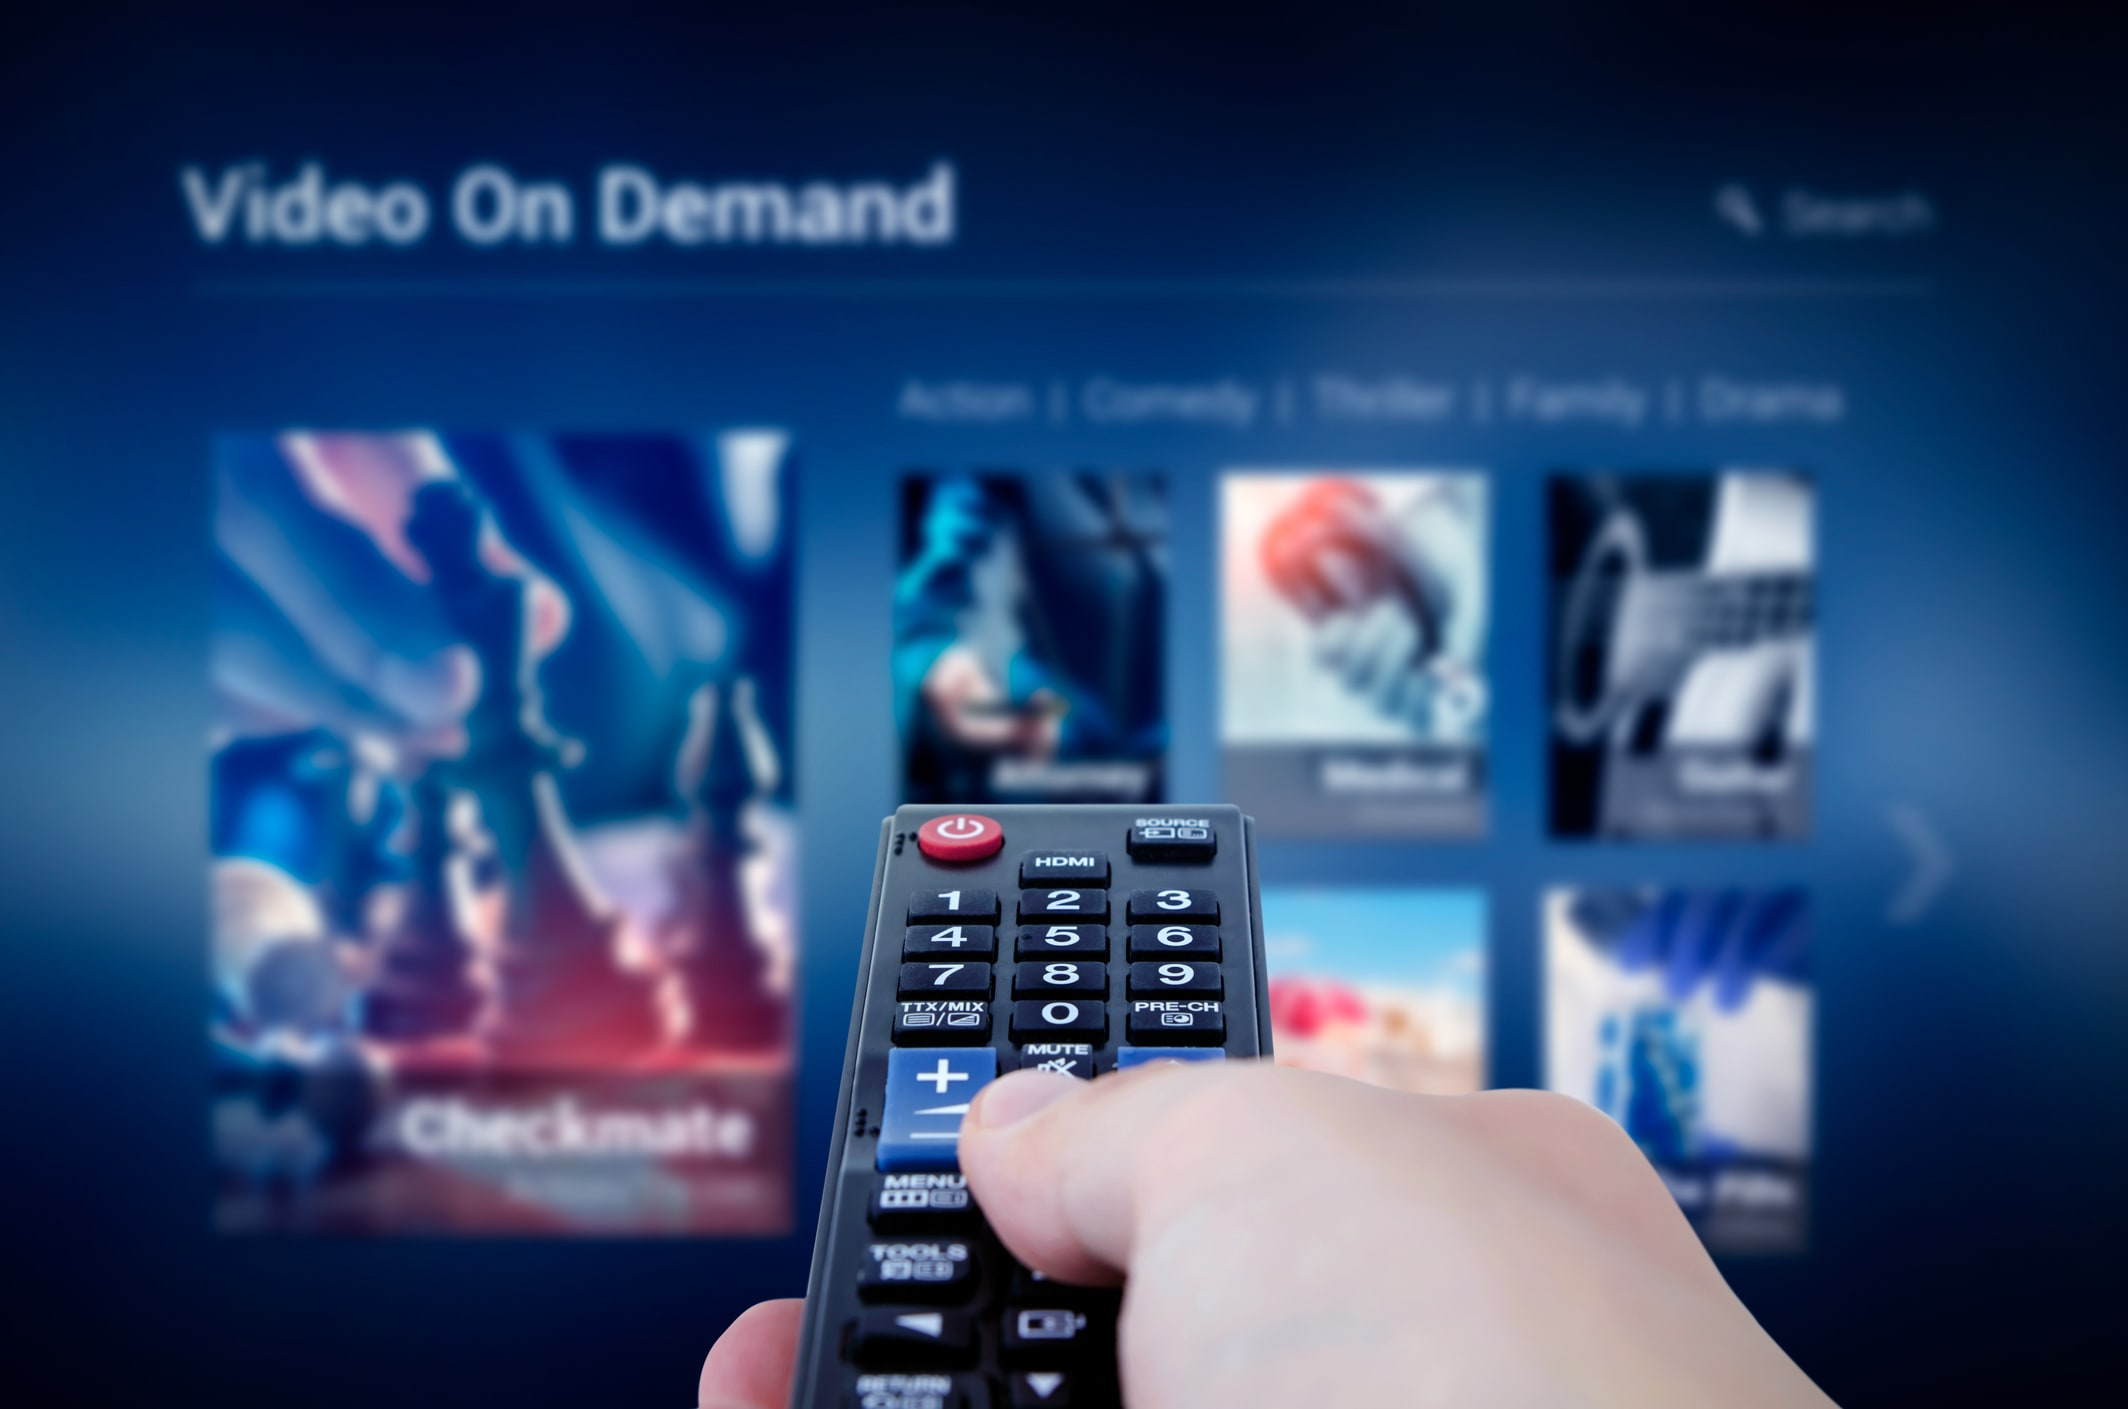 Walmart partners with MGM to boost video-on-demand service Vudu